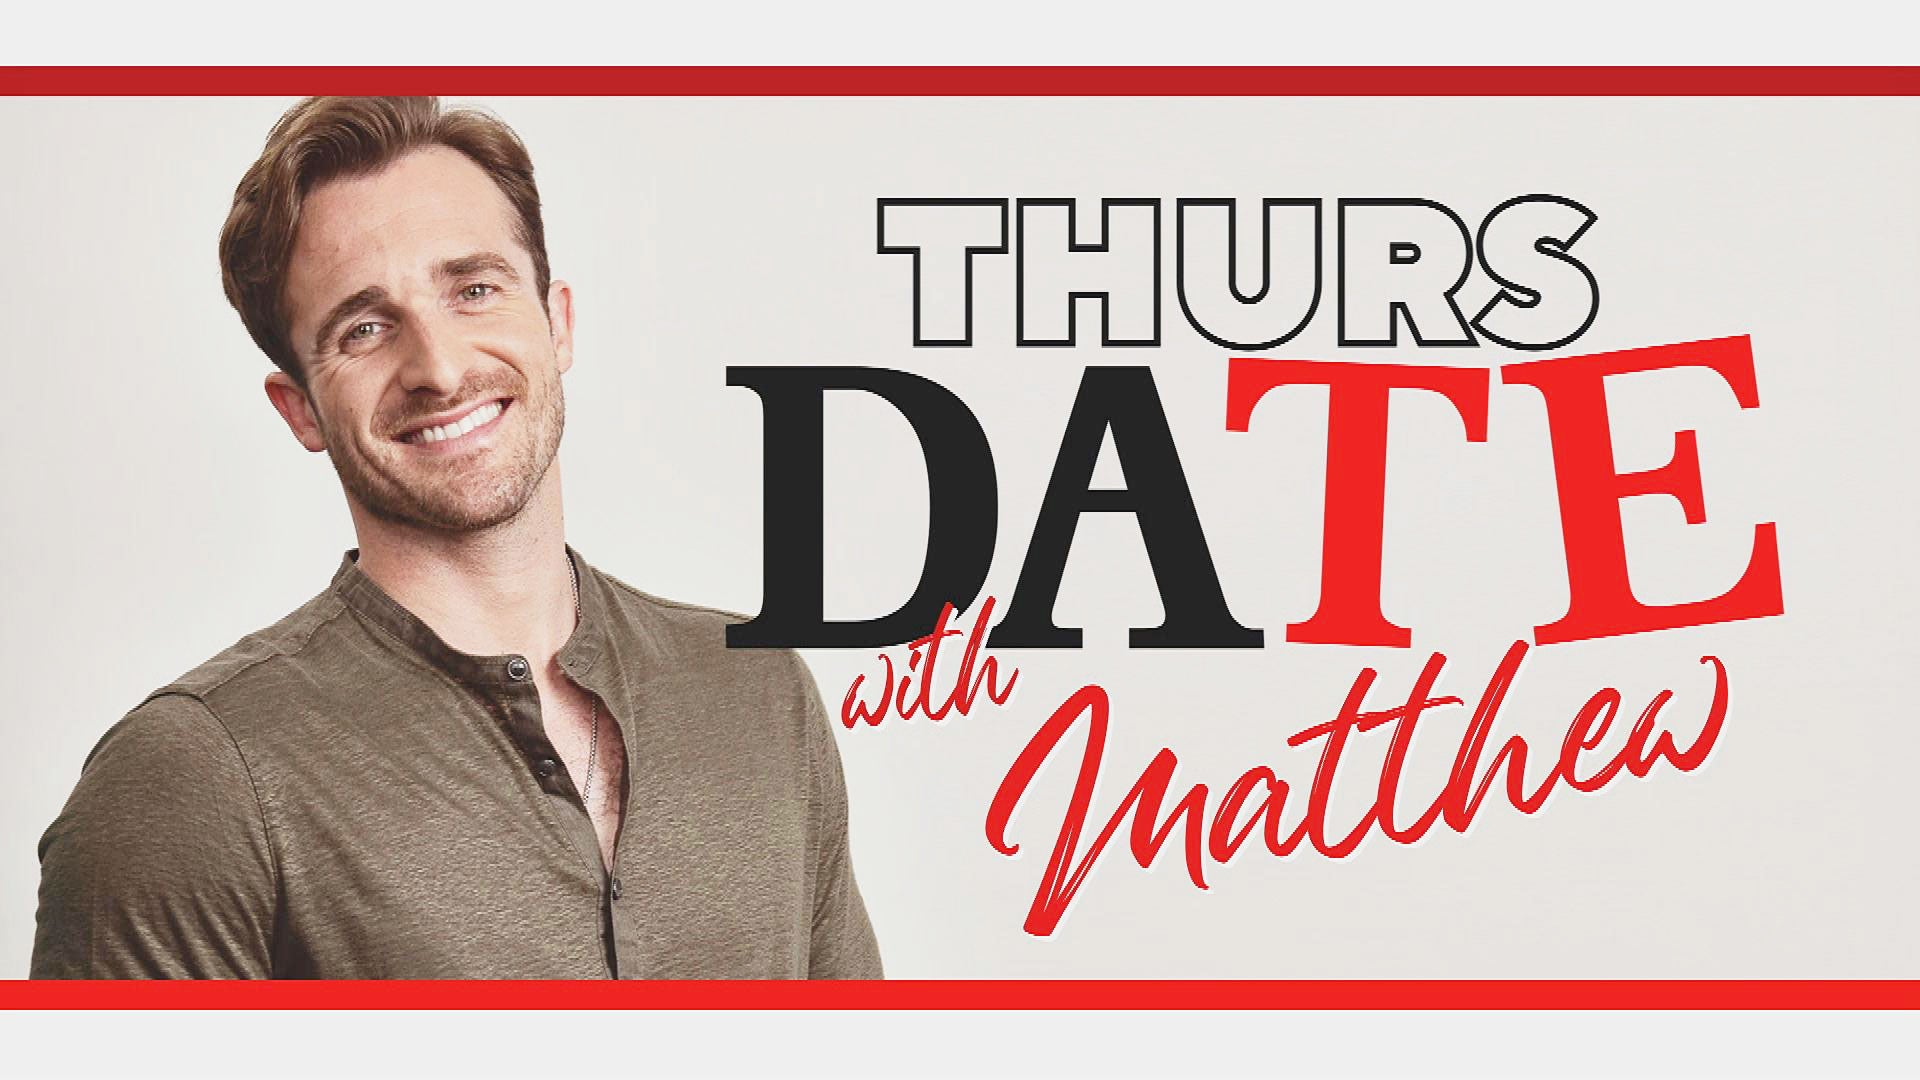 'ThursDATE': Matthew Hussey on Who Should Pay on the First Date (Exclusive)